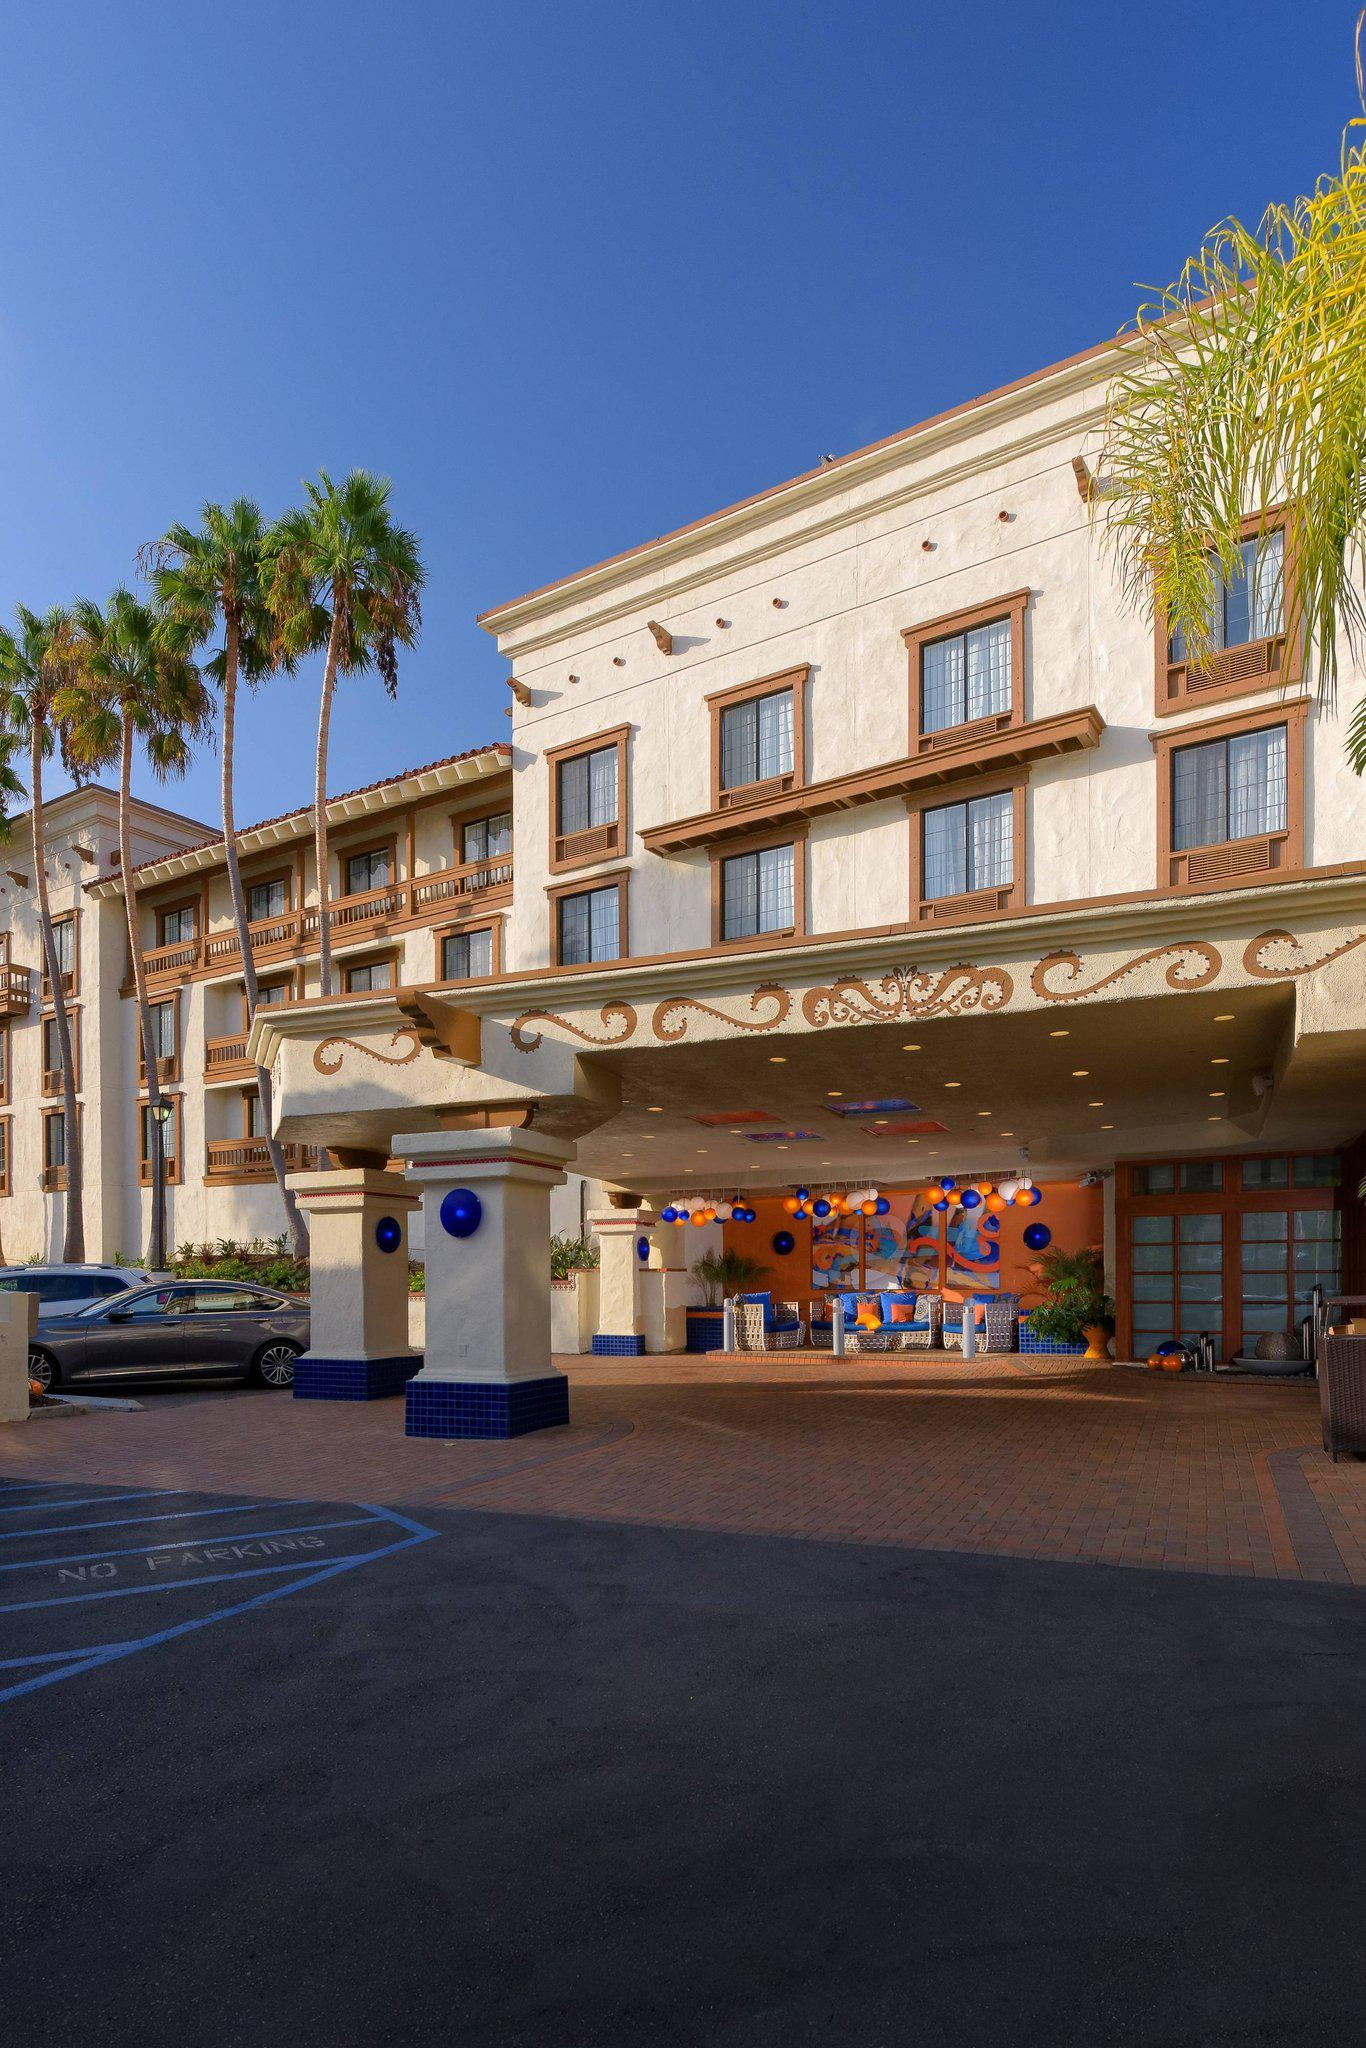 Courtyard by Marriott San Diego Old Town